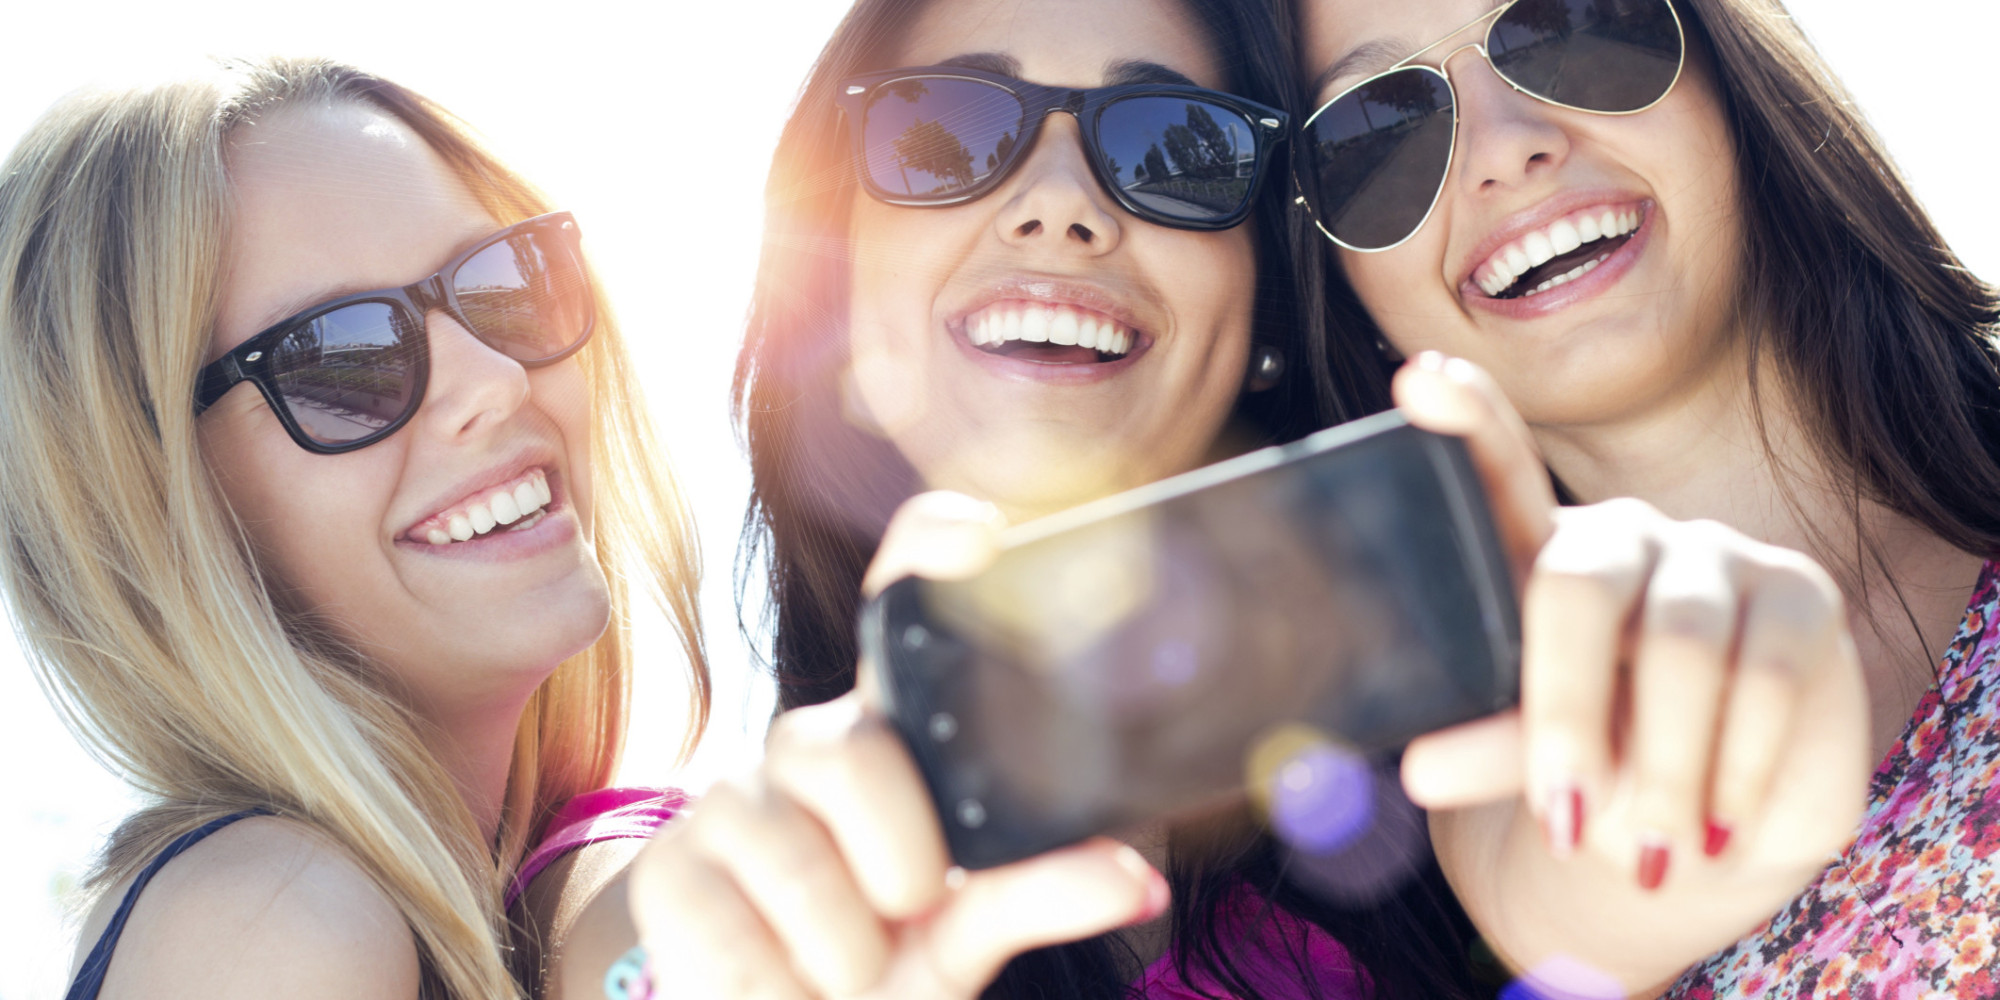 Three teenagers taking a selfie while wearing sunglasses.